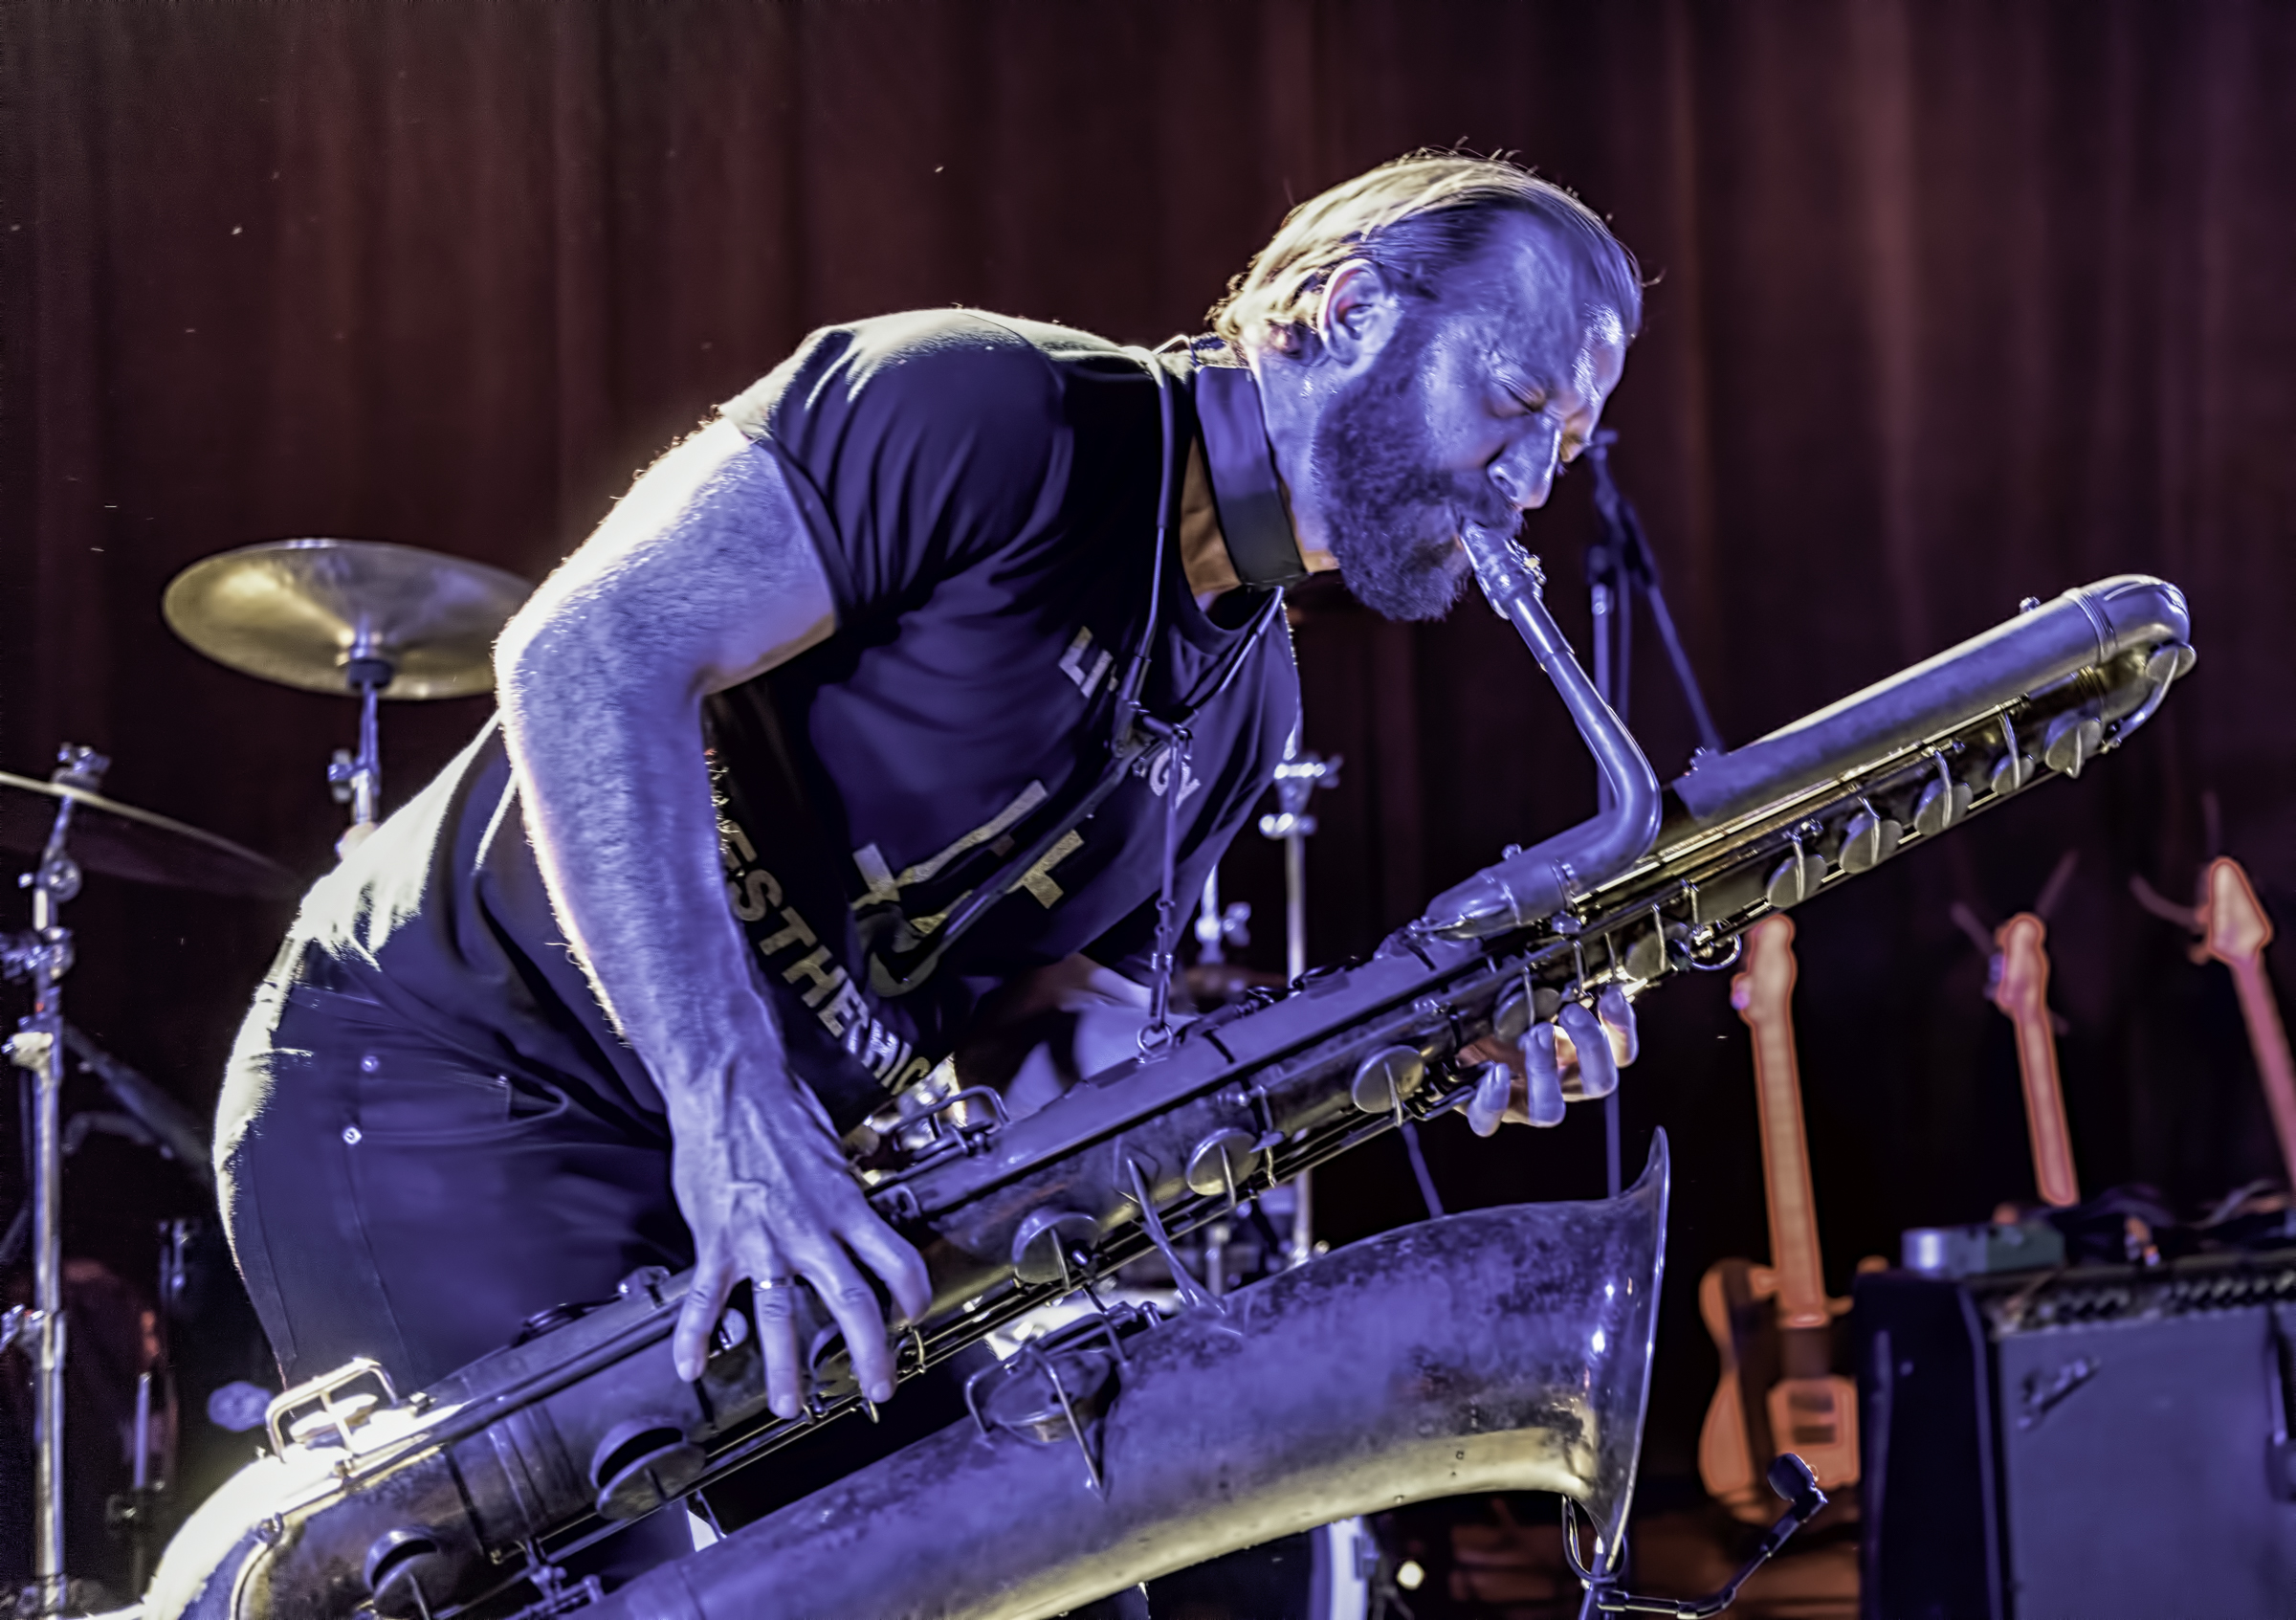 Colin Stetson with Bill Laswell At The NYC Winter Jazzfest 2016